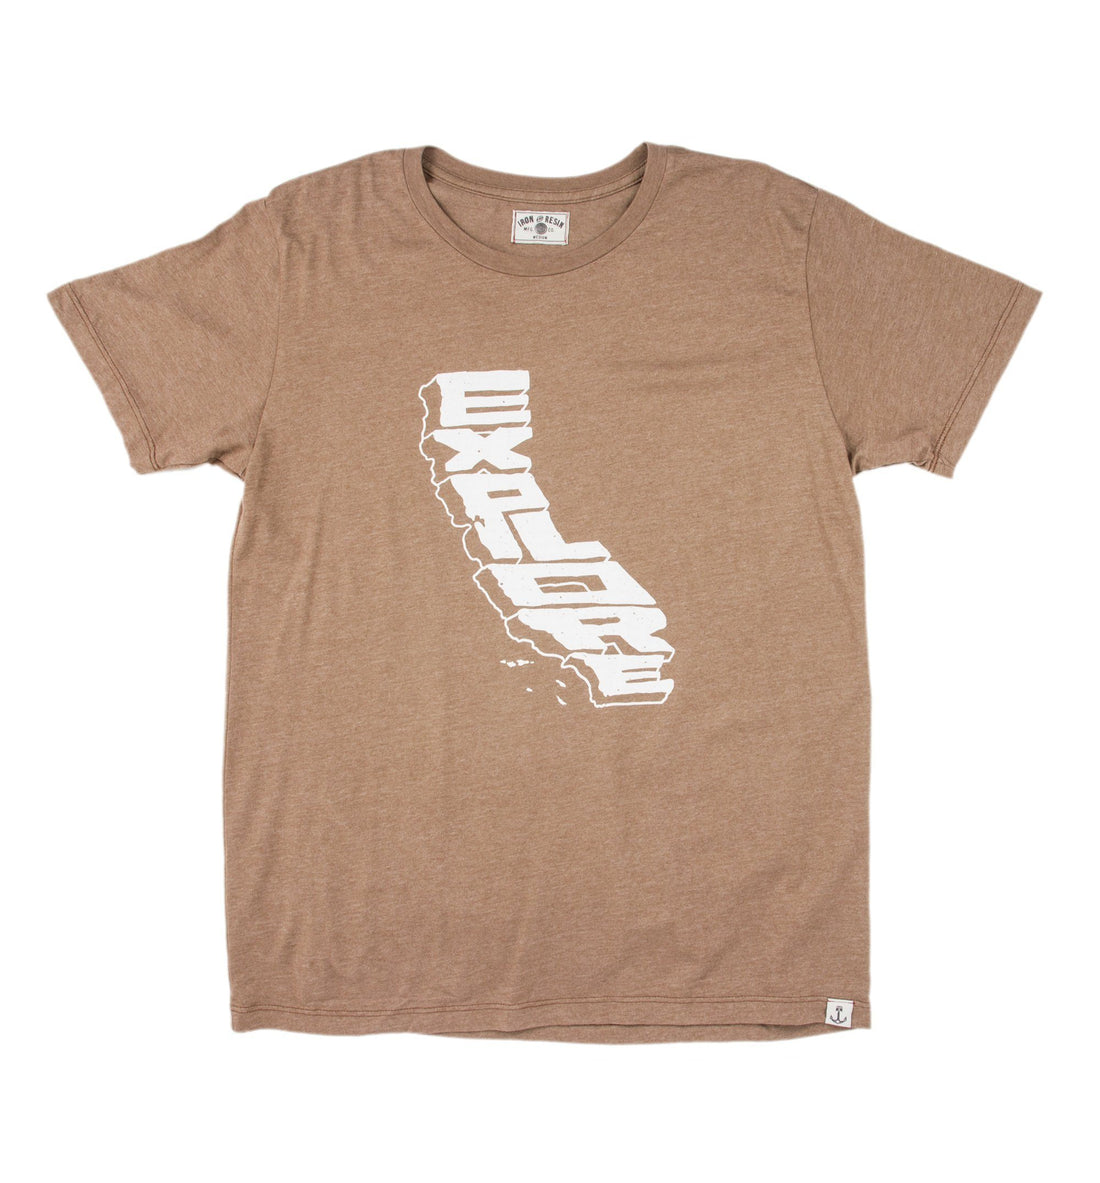 Explore California Tee - Tops - Iron and Resin